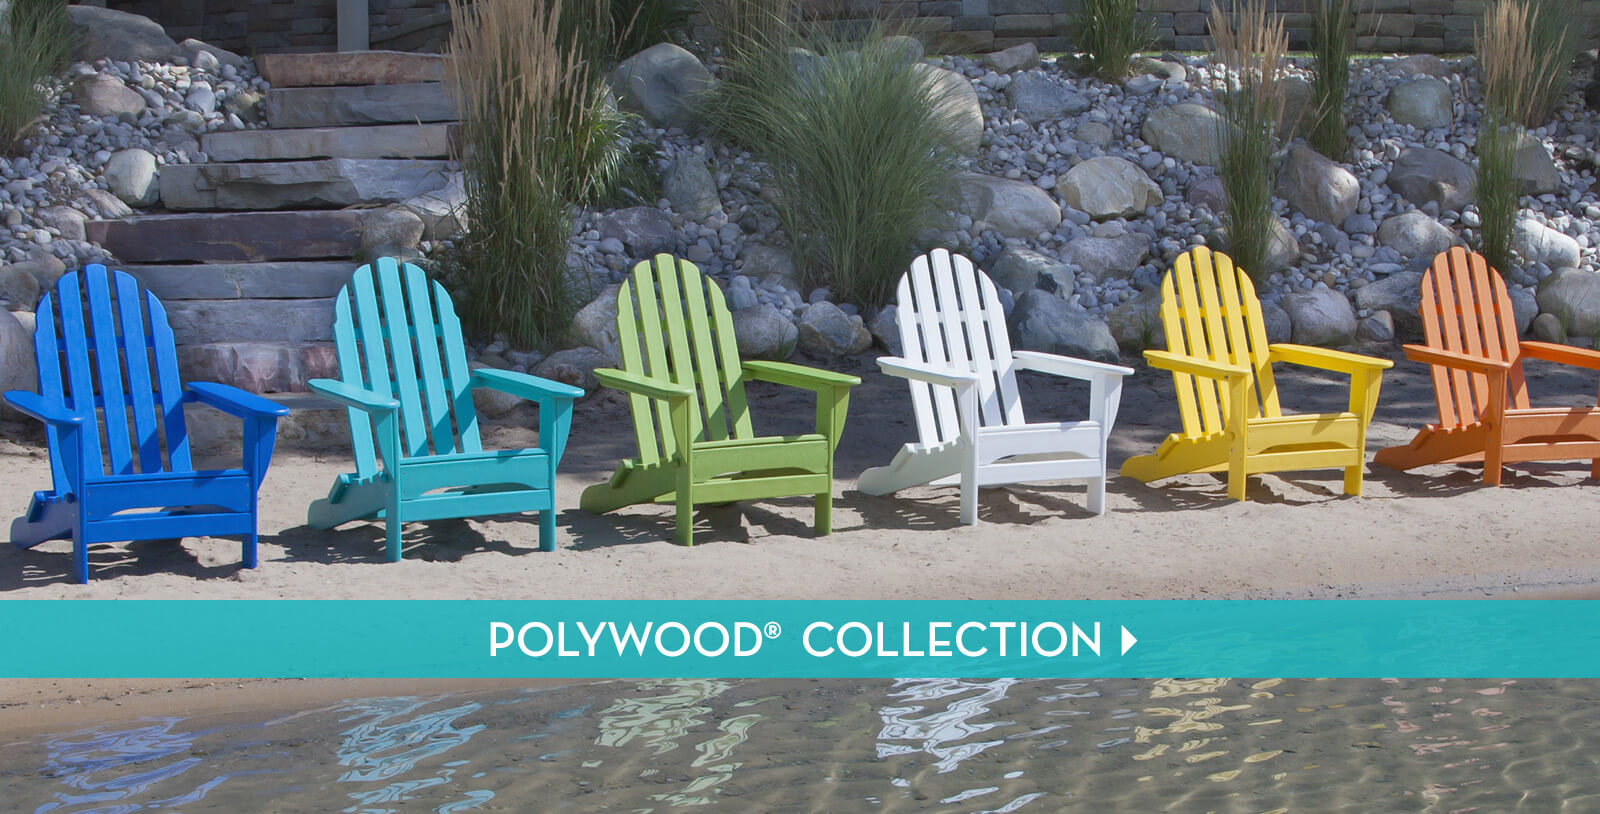 New Arrival - Polywood Collection